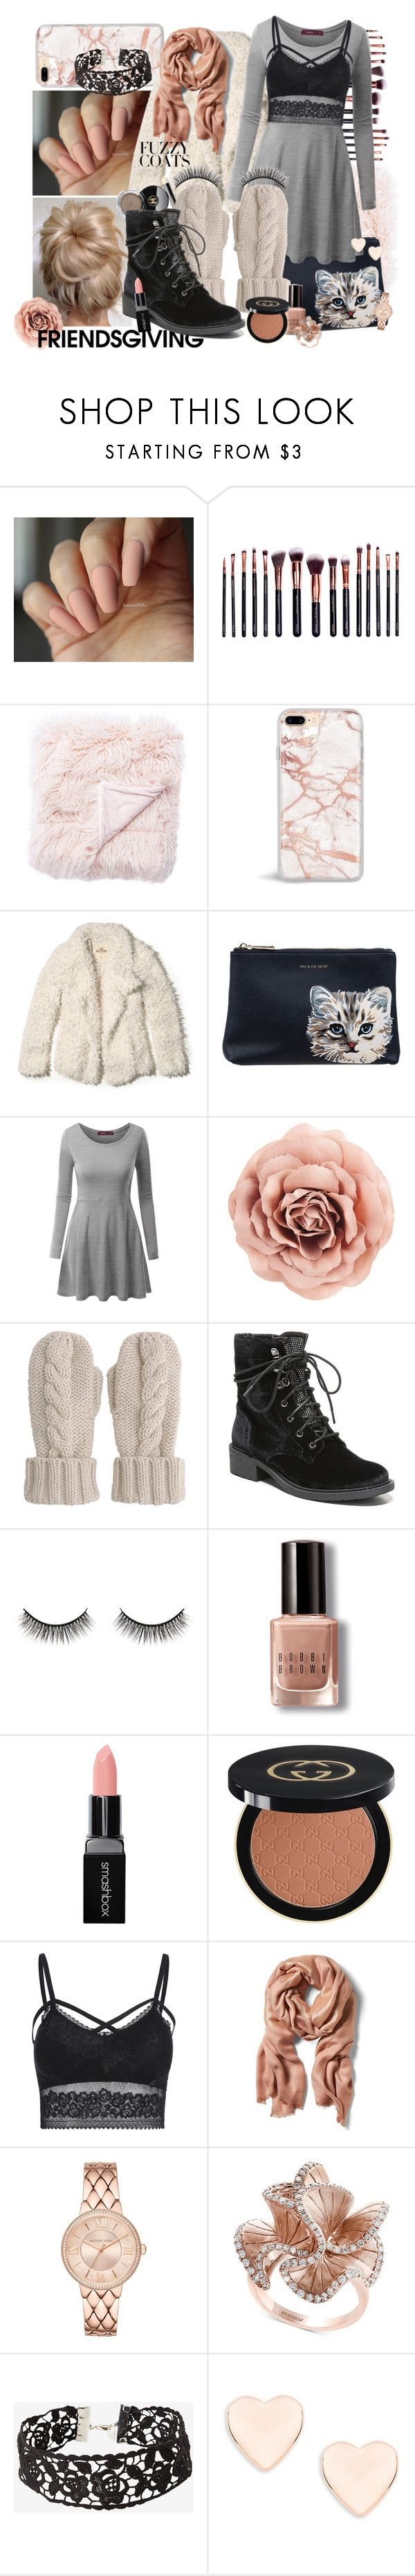 """""""Thankful for Pink and Punk"""" by berryawesome ❤ liked on Polyvore featuring M.O.T.D Cosmetics, Jaipur, Hollister Co., Paul & Joe Sister, Doublju, Mint Velvet, Circus by Sam Edelman, Battington, Bobbi Brown Cosmetics and Smashbox"""